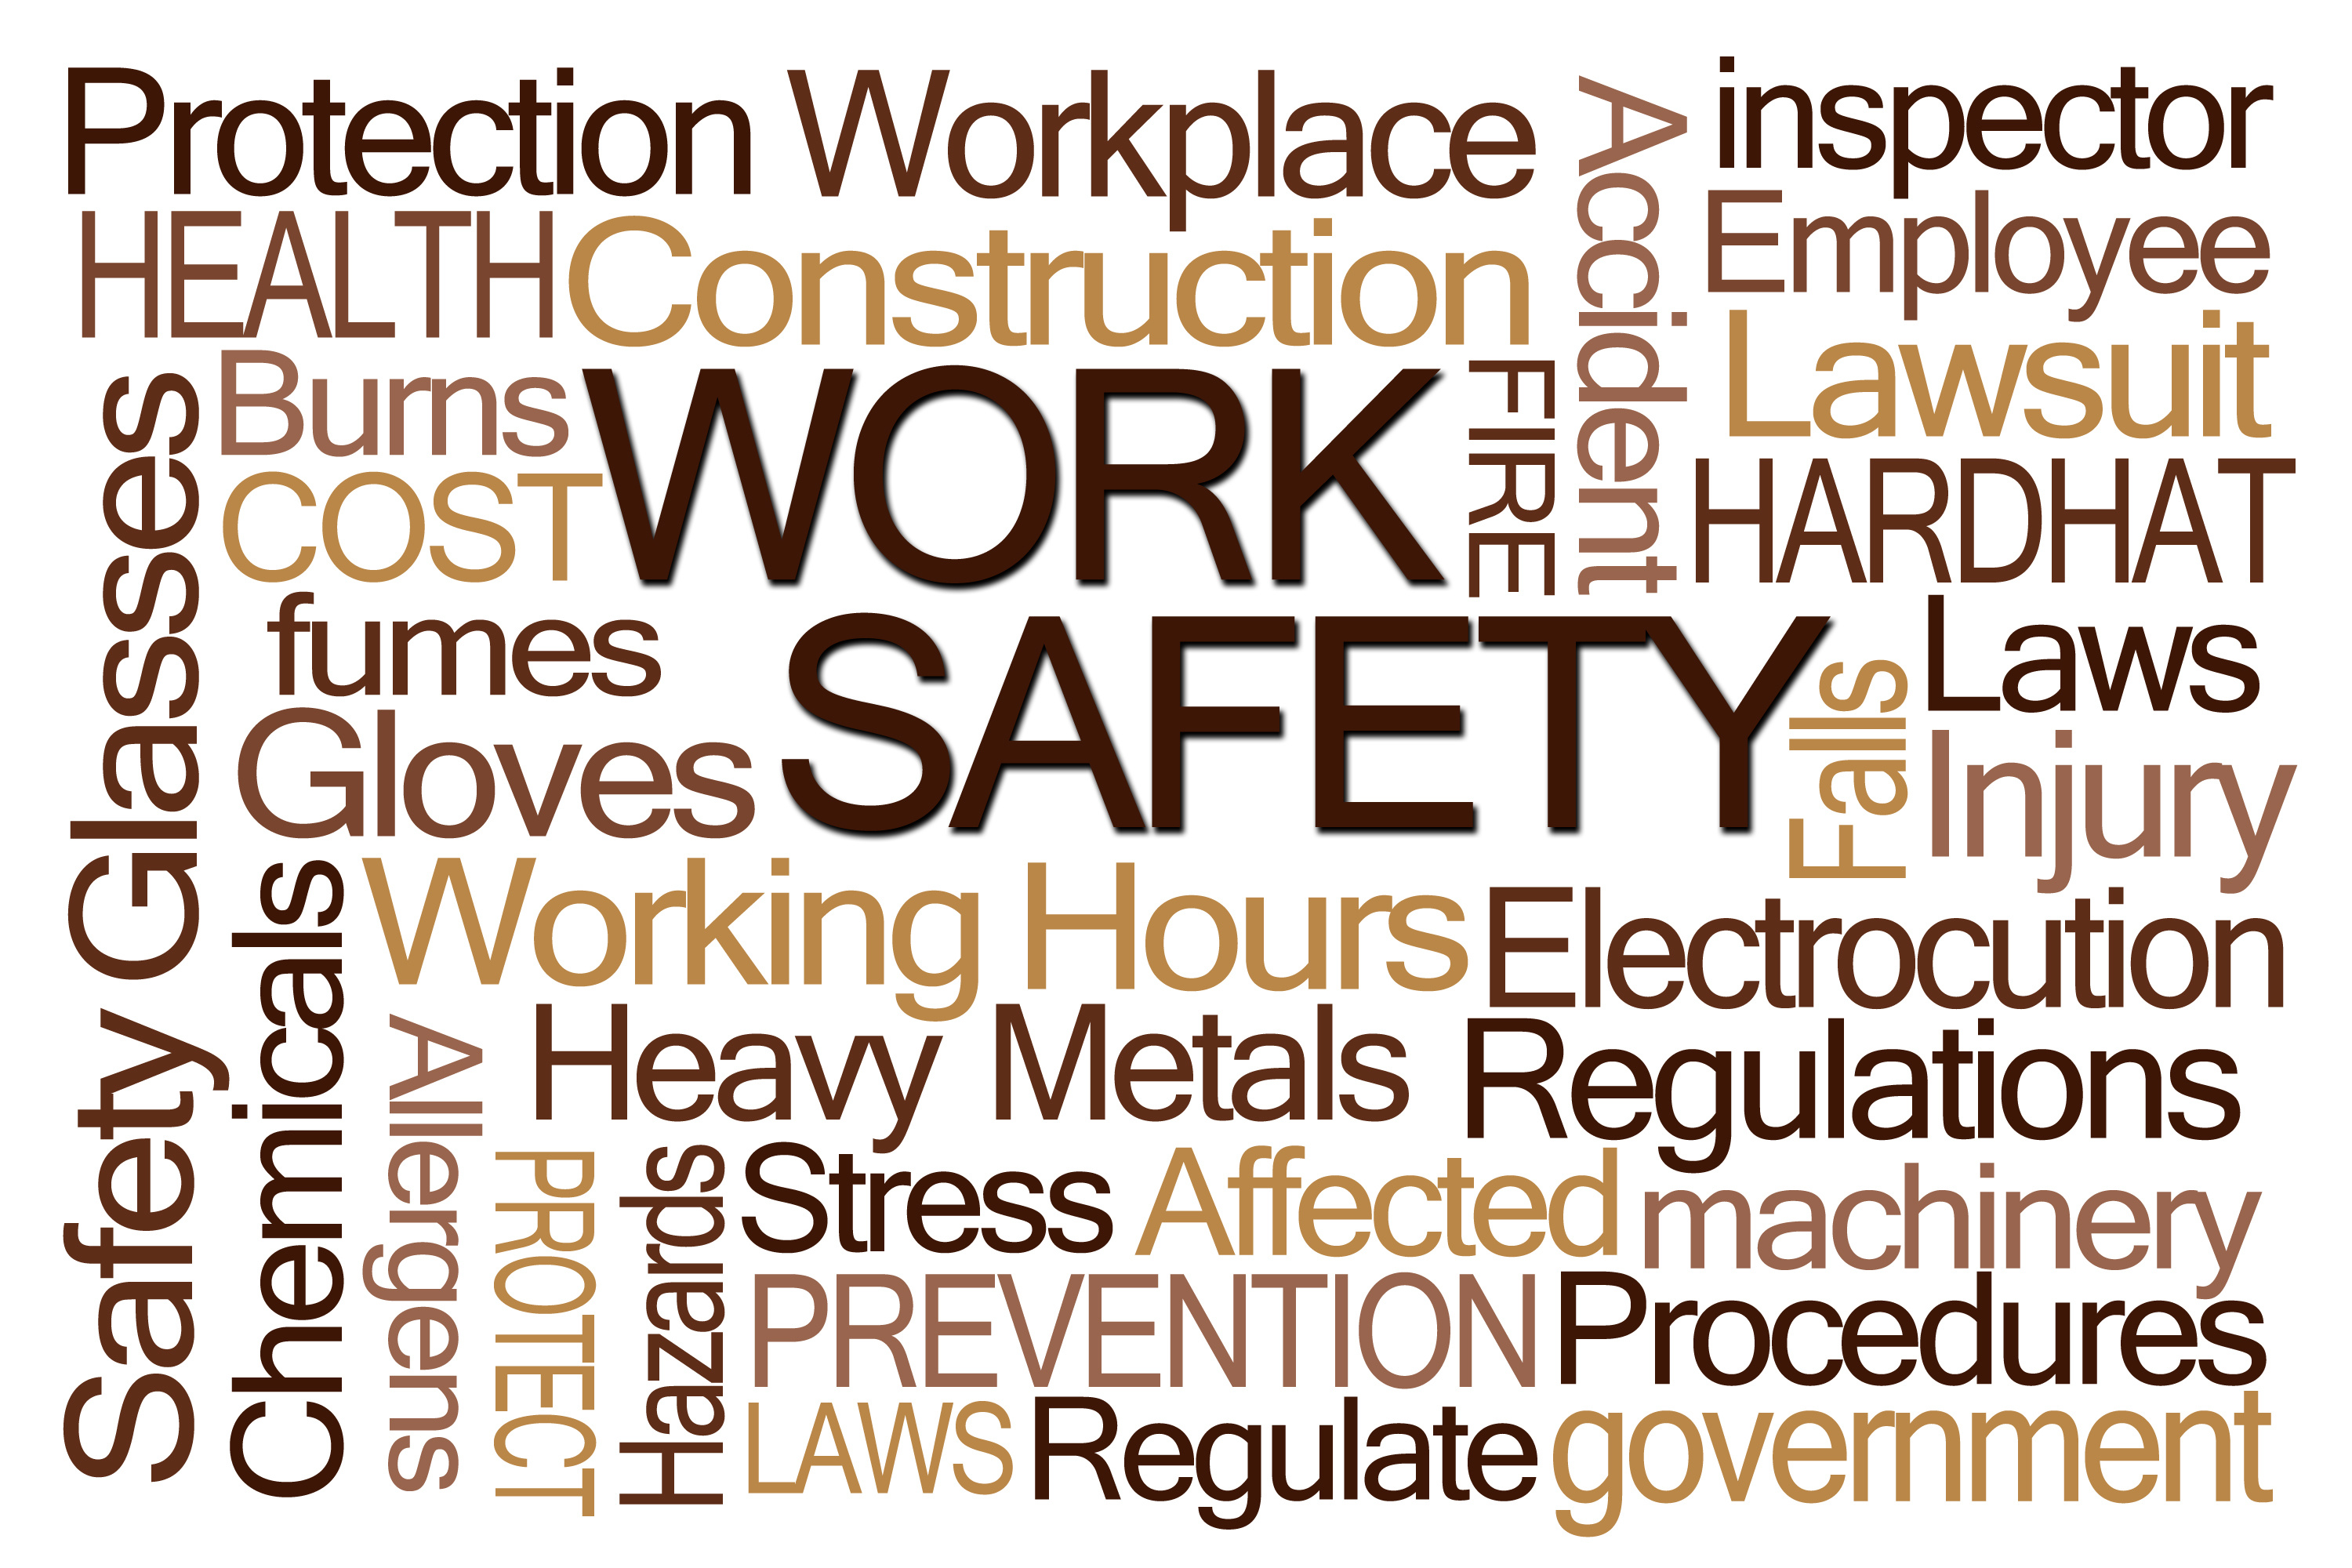 Ten Guidelines For Improving Safety Culture Based on Workers' Feedback